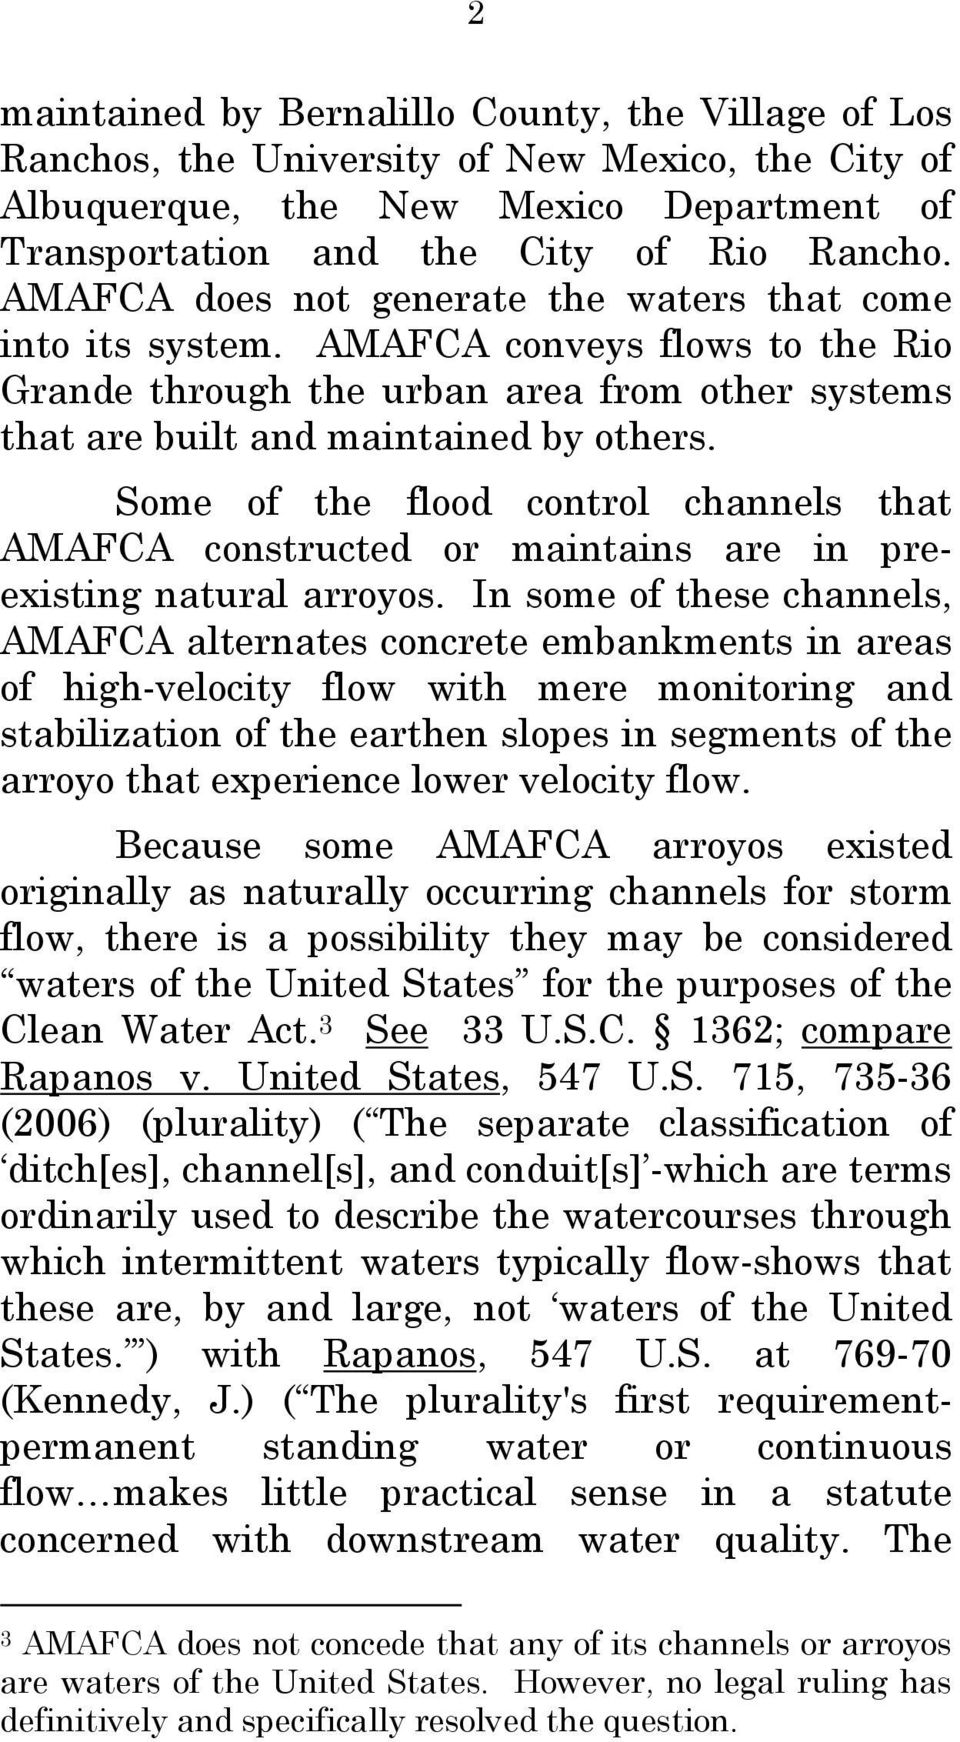 Some of the flood control channels that AMAFCA constructed or maintains are in preexisting natural arroyos.